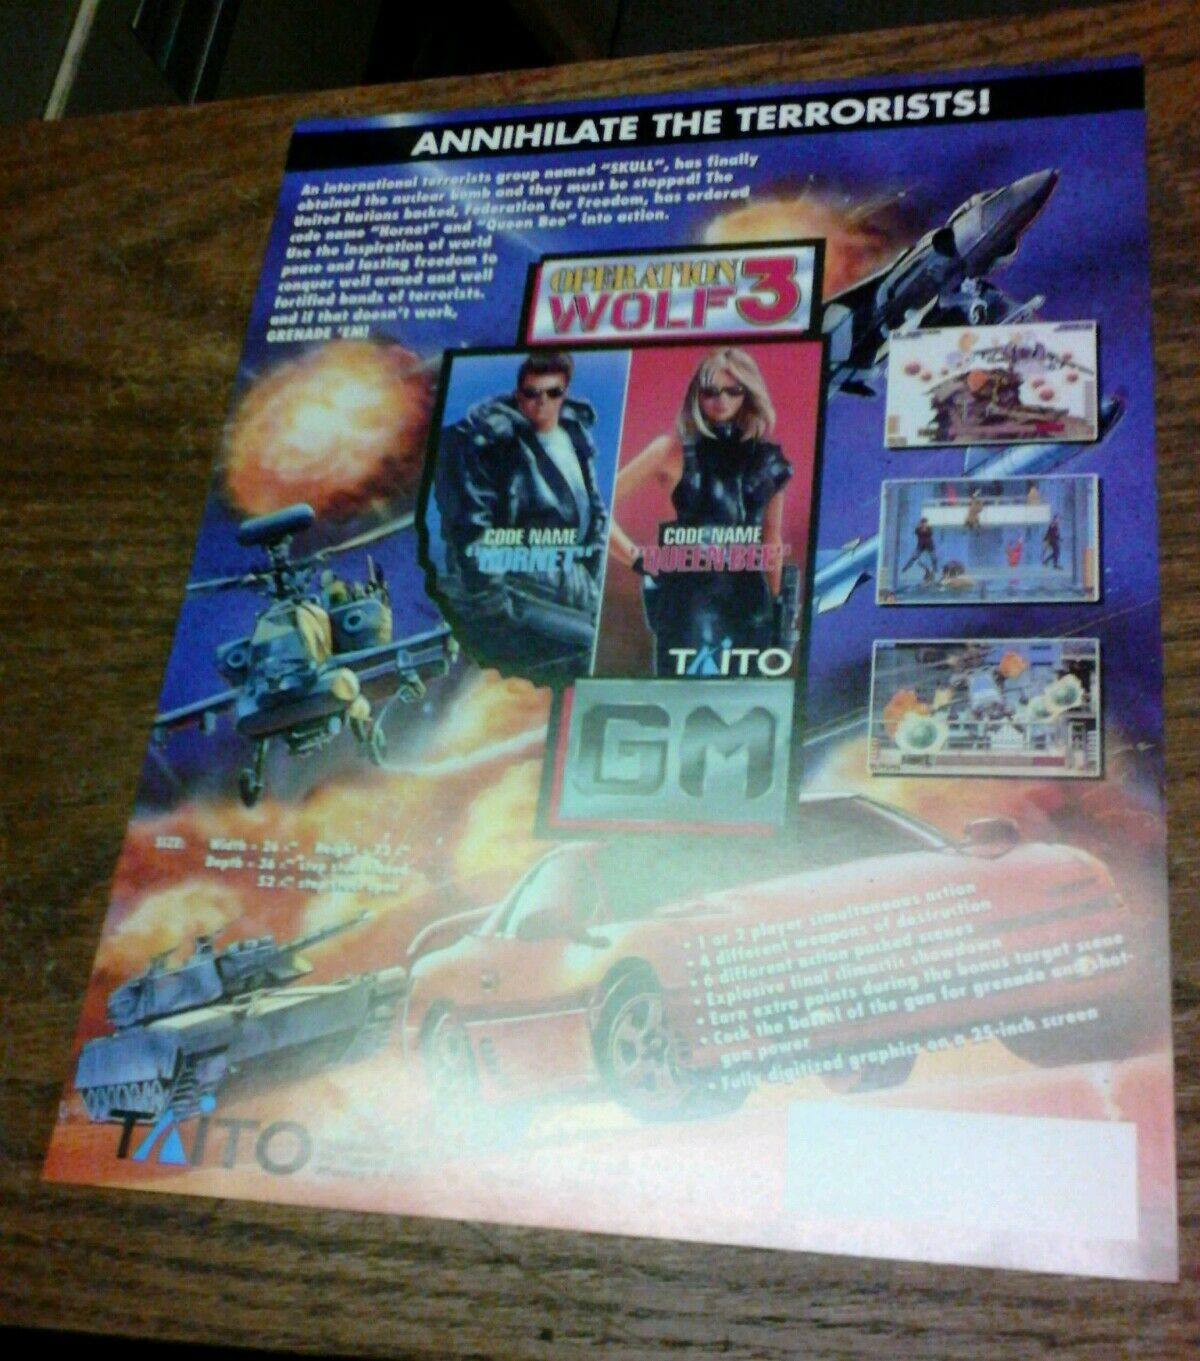 Taito OPERATION WOLF 3 Arcade Video Game flyer wiring diagram apsma wiring diagram massey ferguson 240 \u2022 45 63 74 91  at creativeand.co